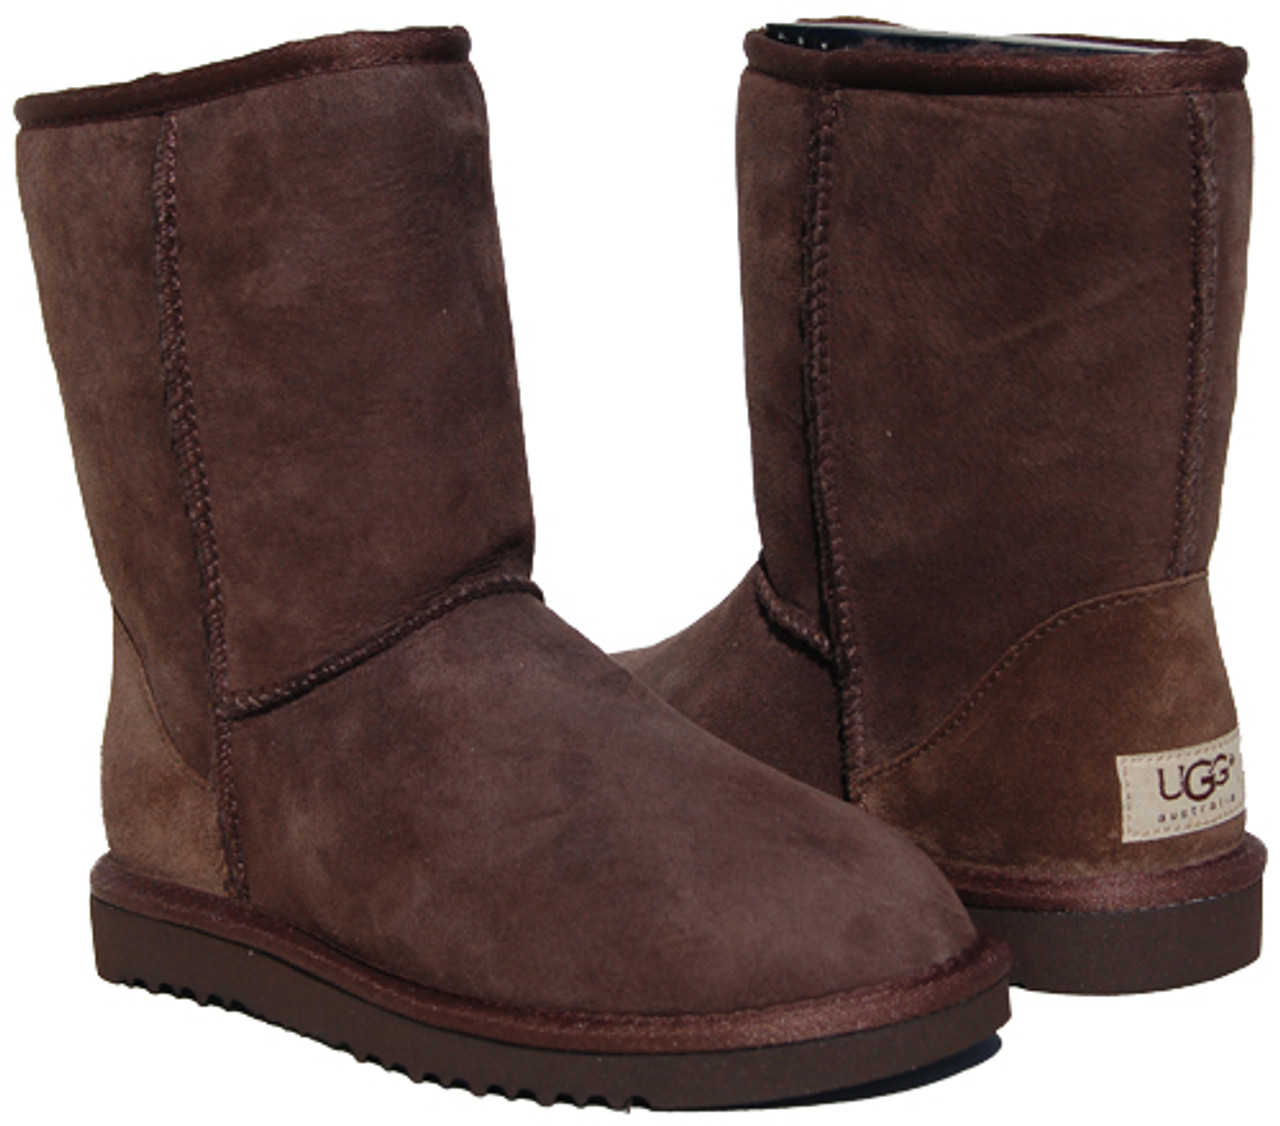 Ugg Classic Short Chocolate Ladies Boots